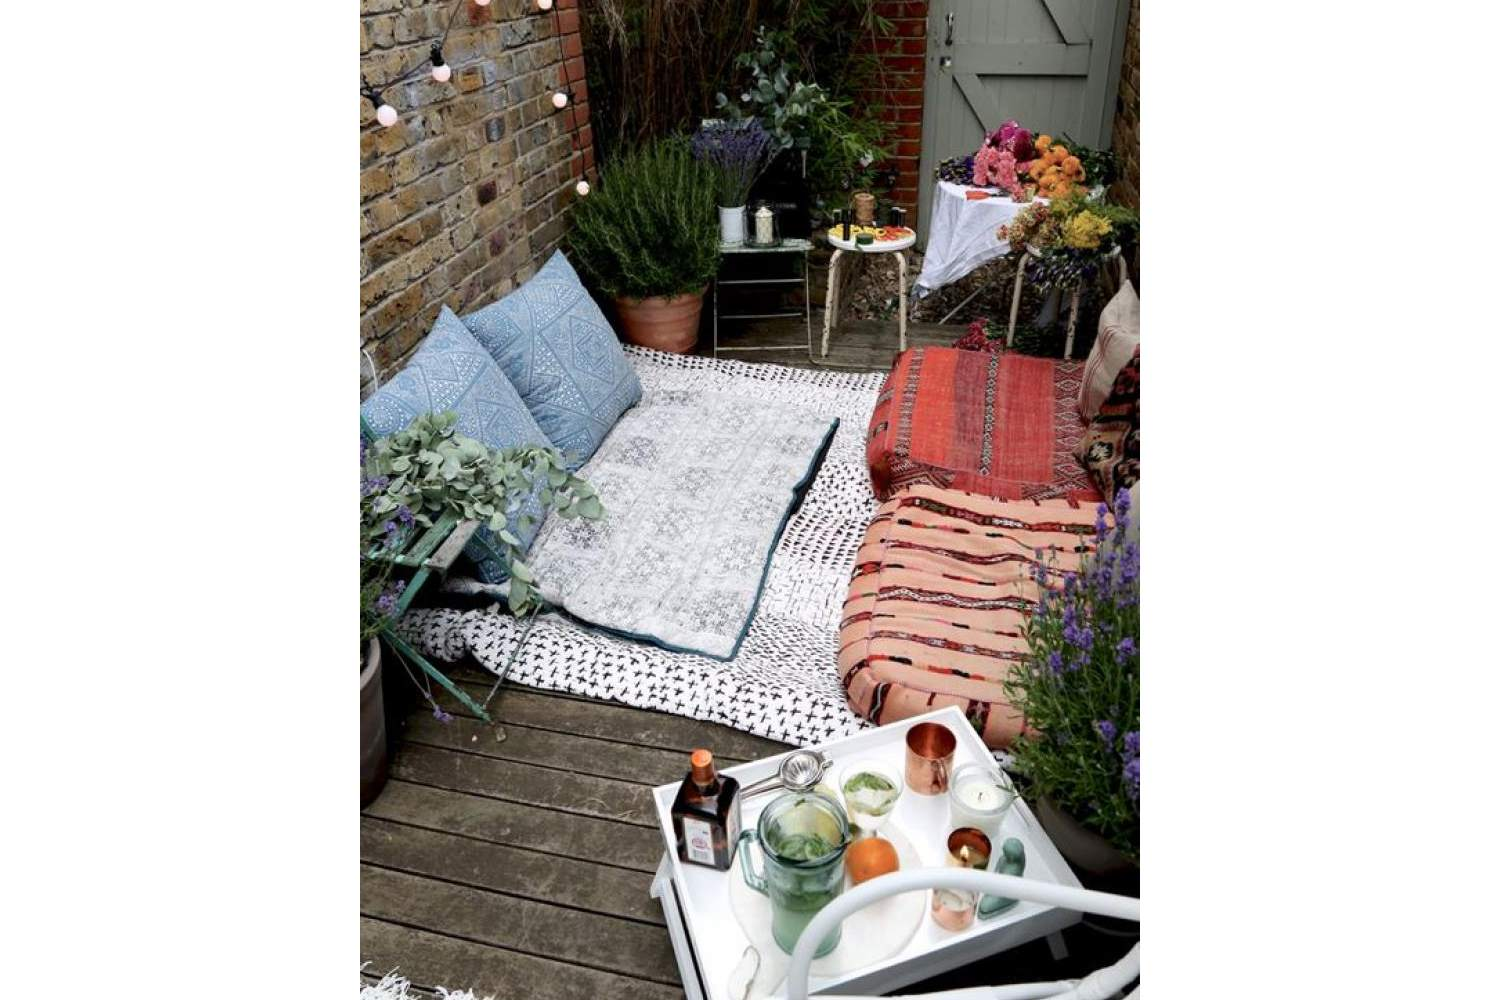 How to Turn Your Tiny Balcony Into an Outdoor Paradise Narrow Backyard Cement Ideas on backyard gravel ideas, sloped backyard ideas, backyard grass ideas, backyard furniture ideas, backyard pavers ideas, backyard stone ideas, backyard sand ideas, backyard landscaping ideas, backyard building ideas, backyard floor ideas, backyard rock ideas, backyard construction ideas, backyard slate ideas, backyard tile ideas, small backyard ideas, backyard brick ideas, backyard wood ideas, backyard paint ideas, backyard food ideas, backyard water ideas,